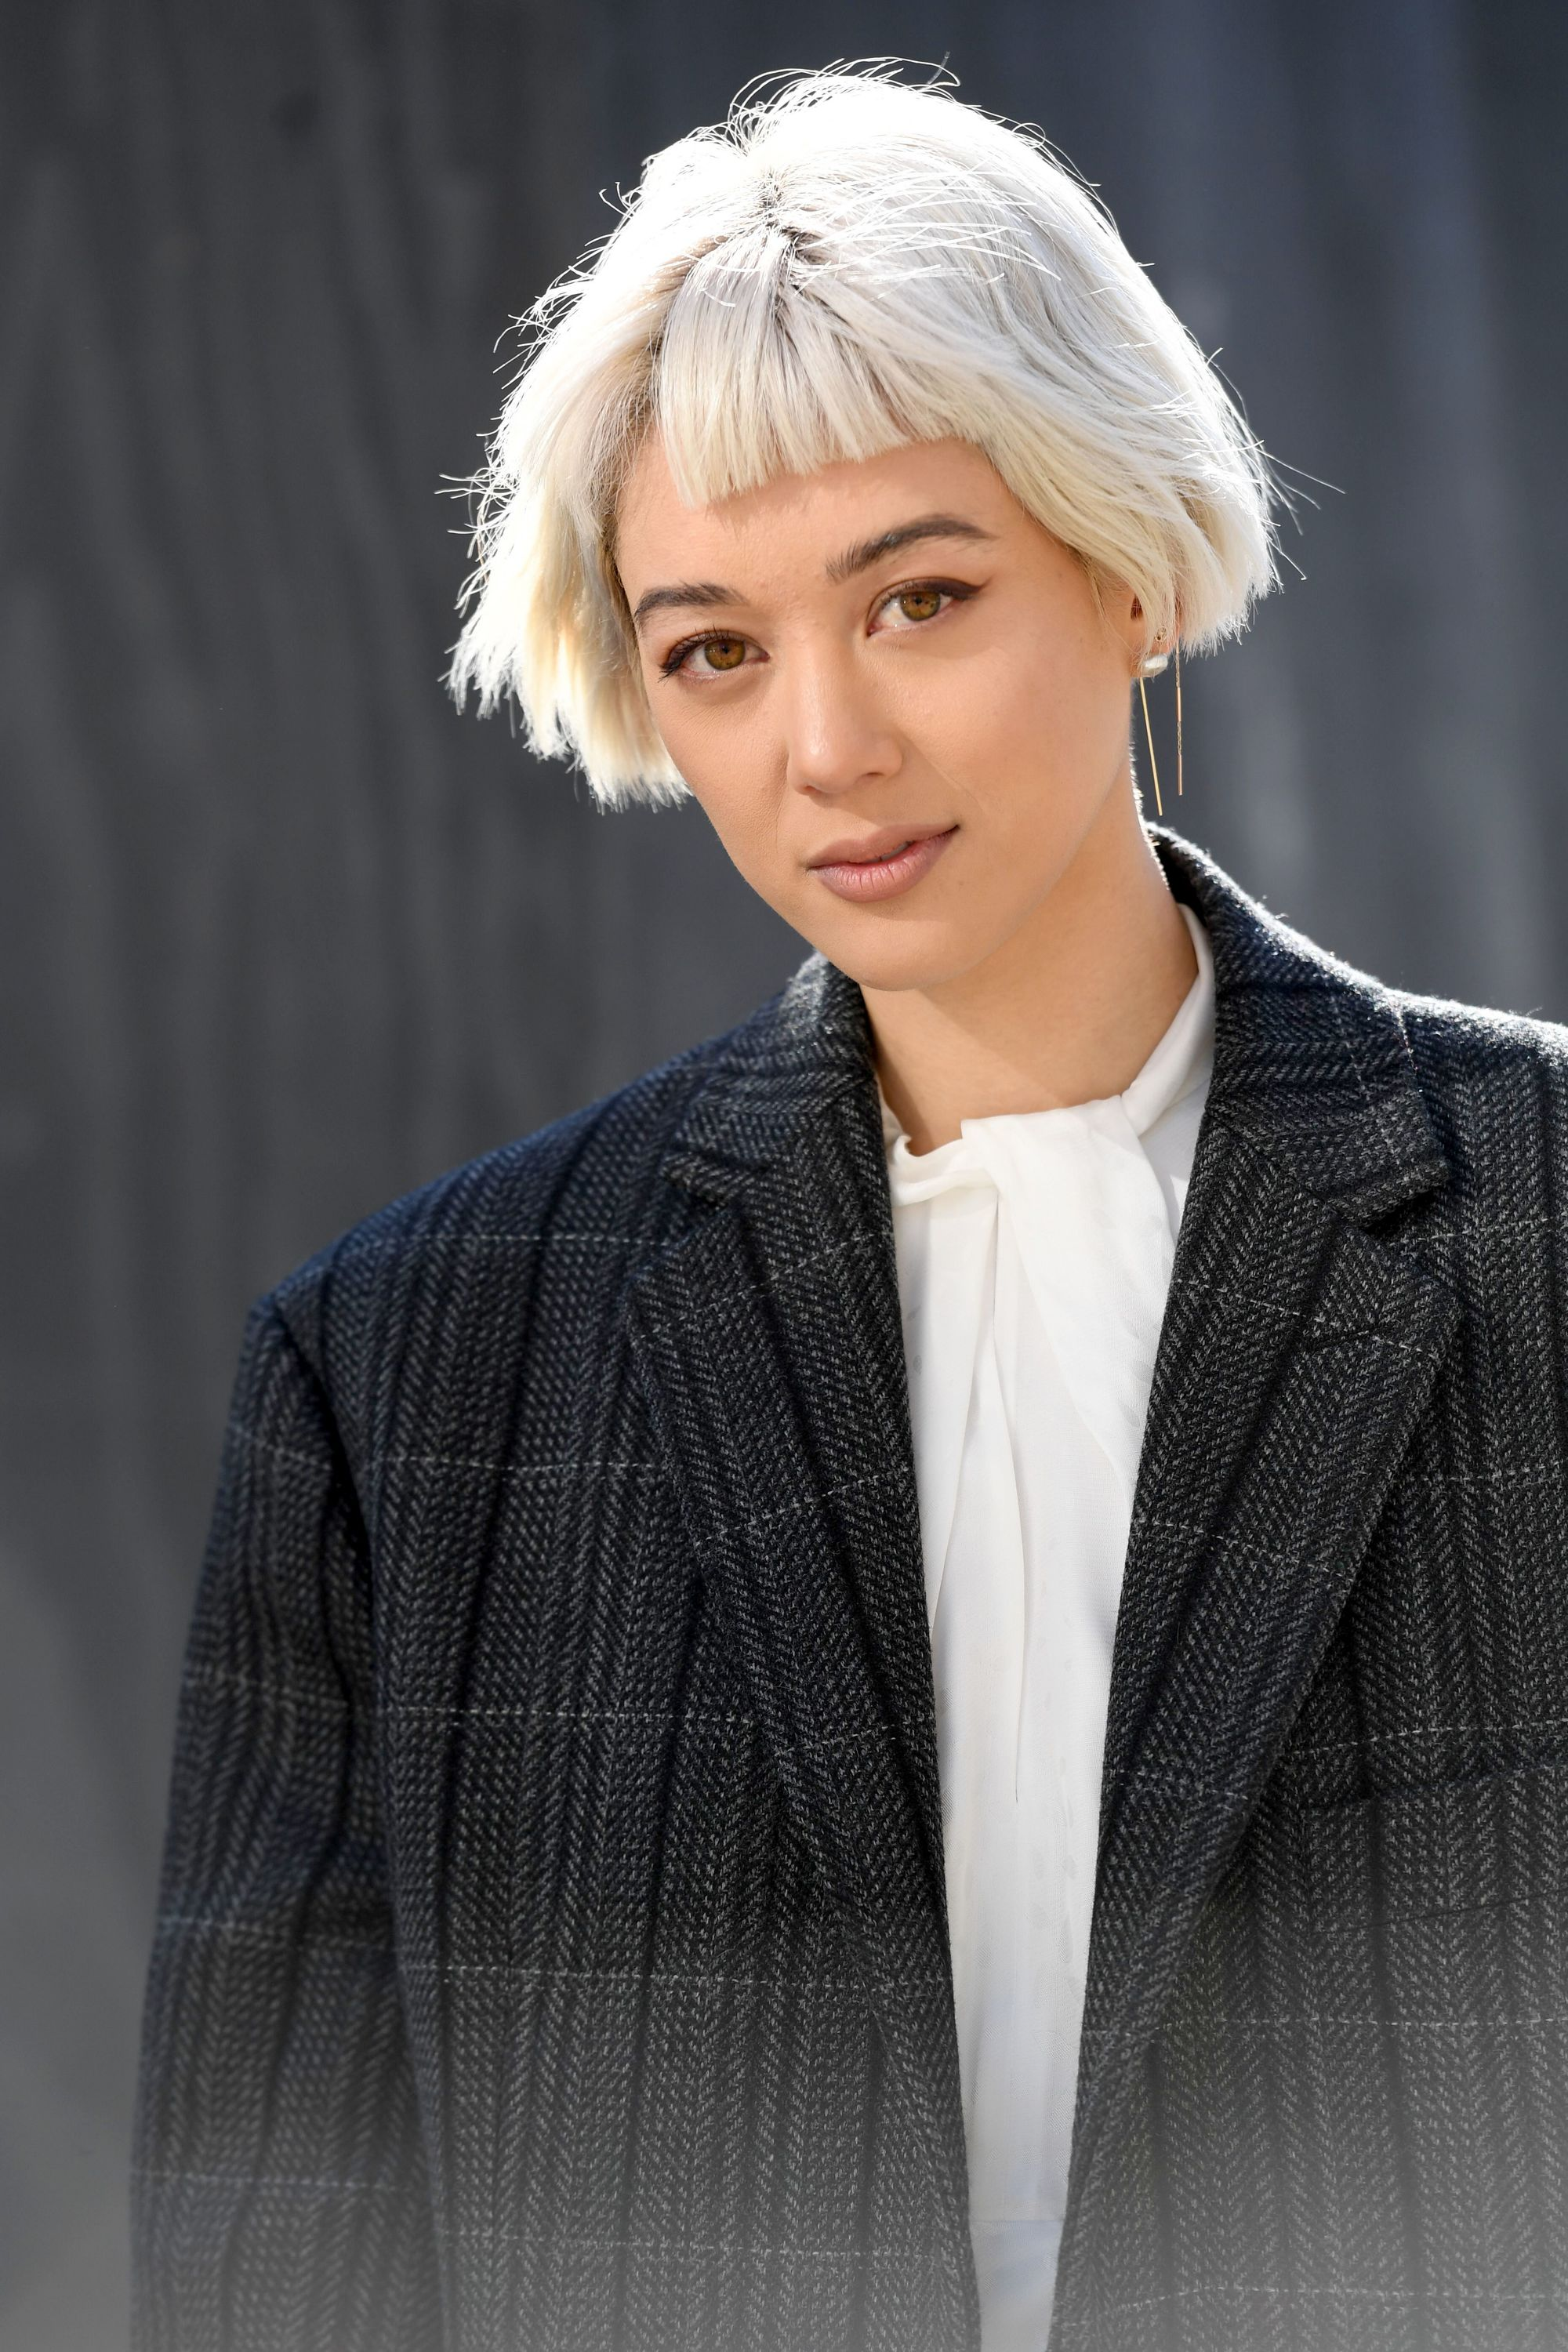 Woman with bright ash blonde bob with micro fringe, wearing a black blazer with white shirt